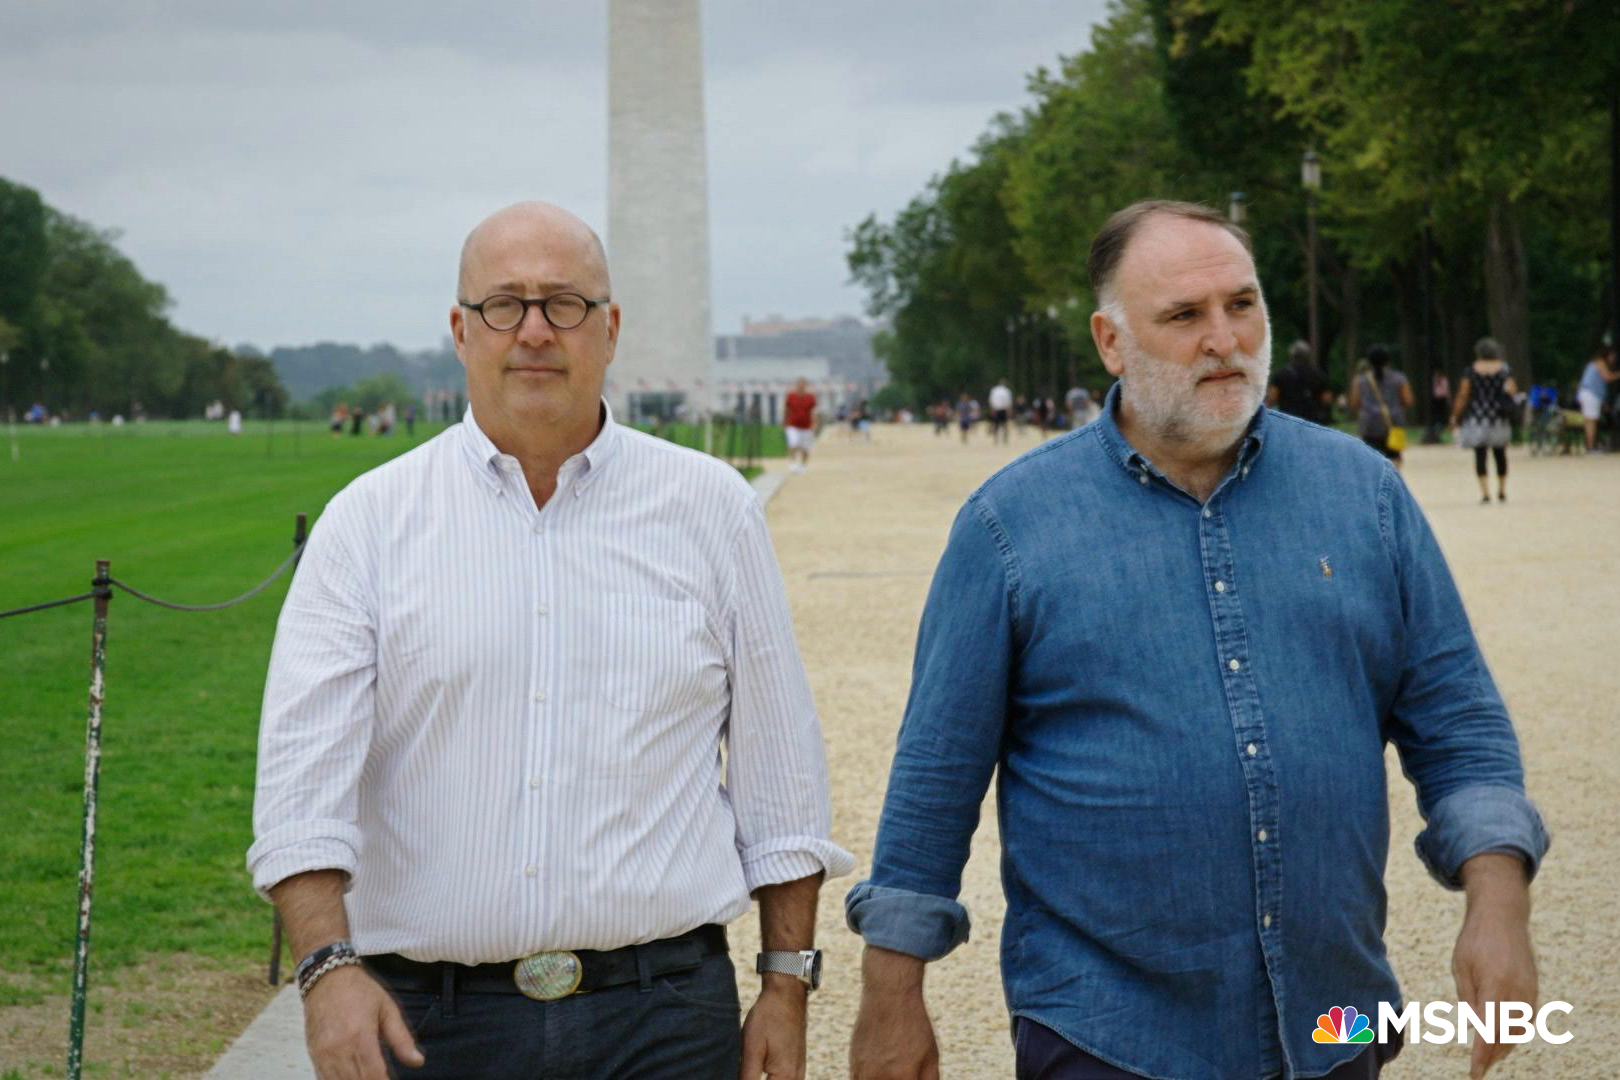 Andrew Zimmern and Jose Andres in Washington, D.C., with the Washington Monument in the background.